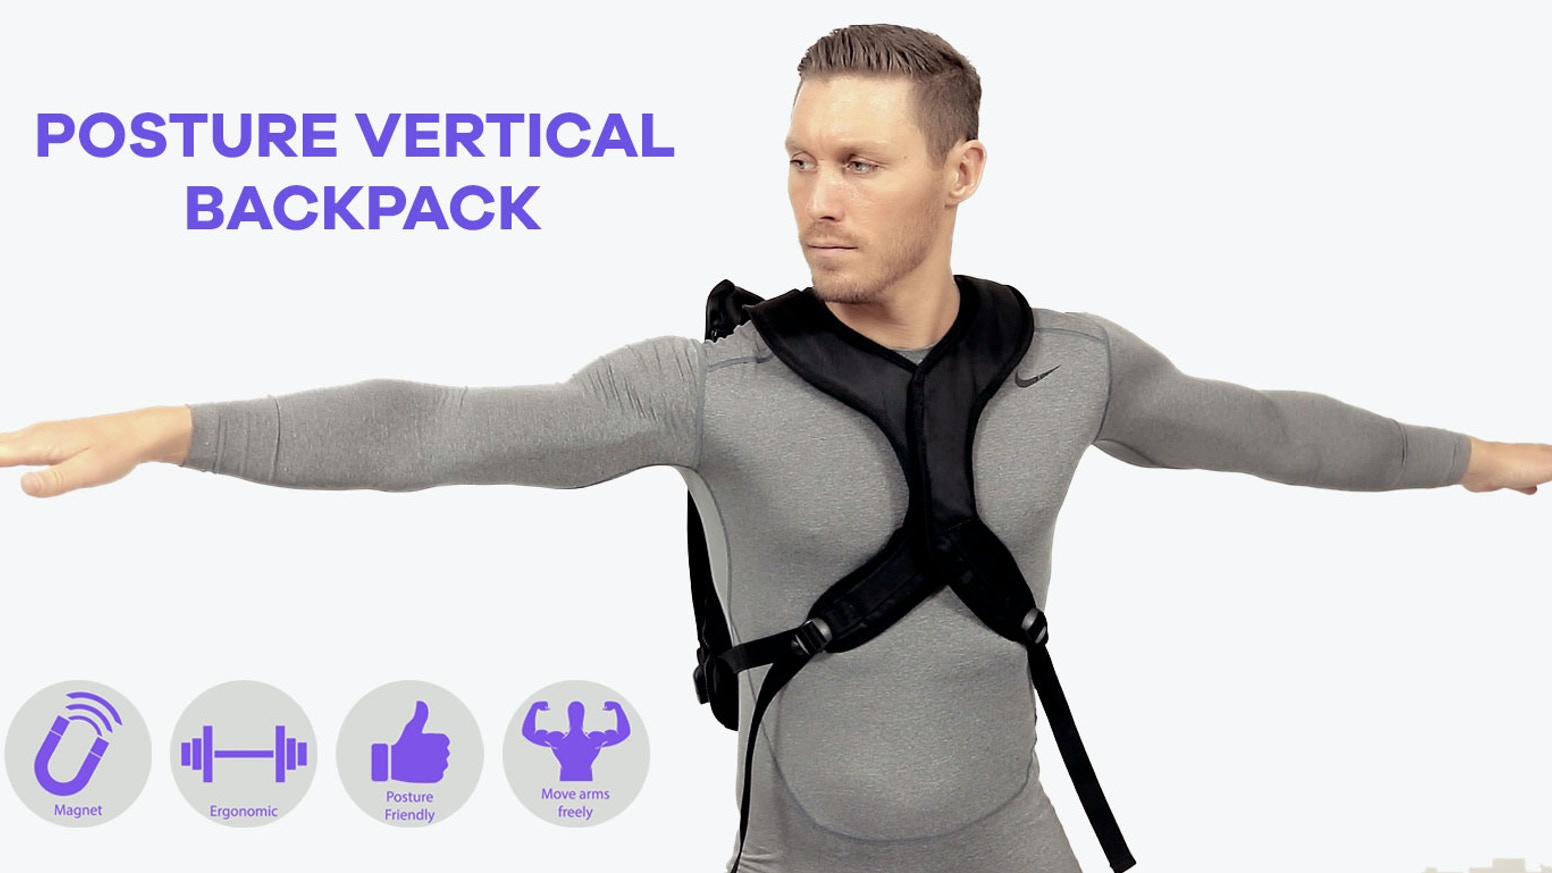 A backpack with magnet closure in the front that improves posture. Weight is carried on your sternum with no pressure on shoulders.